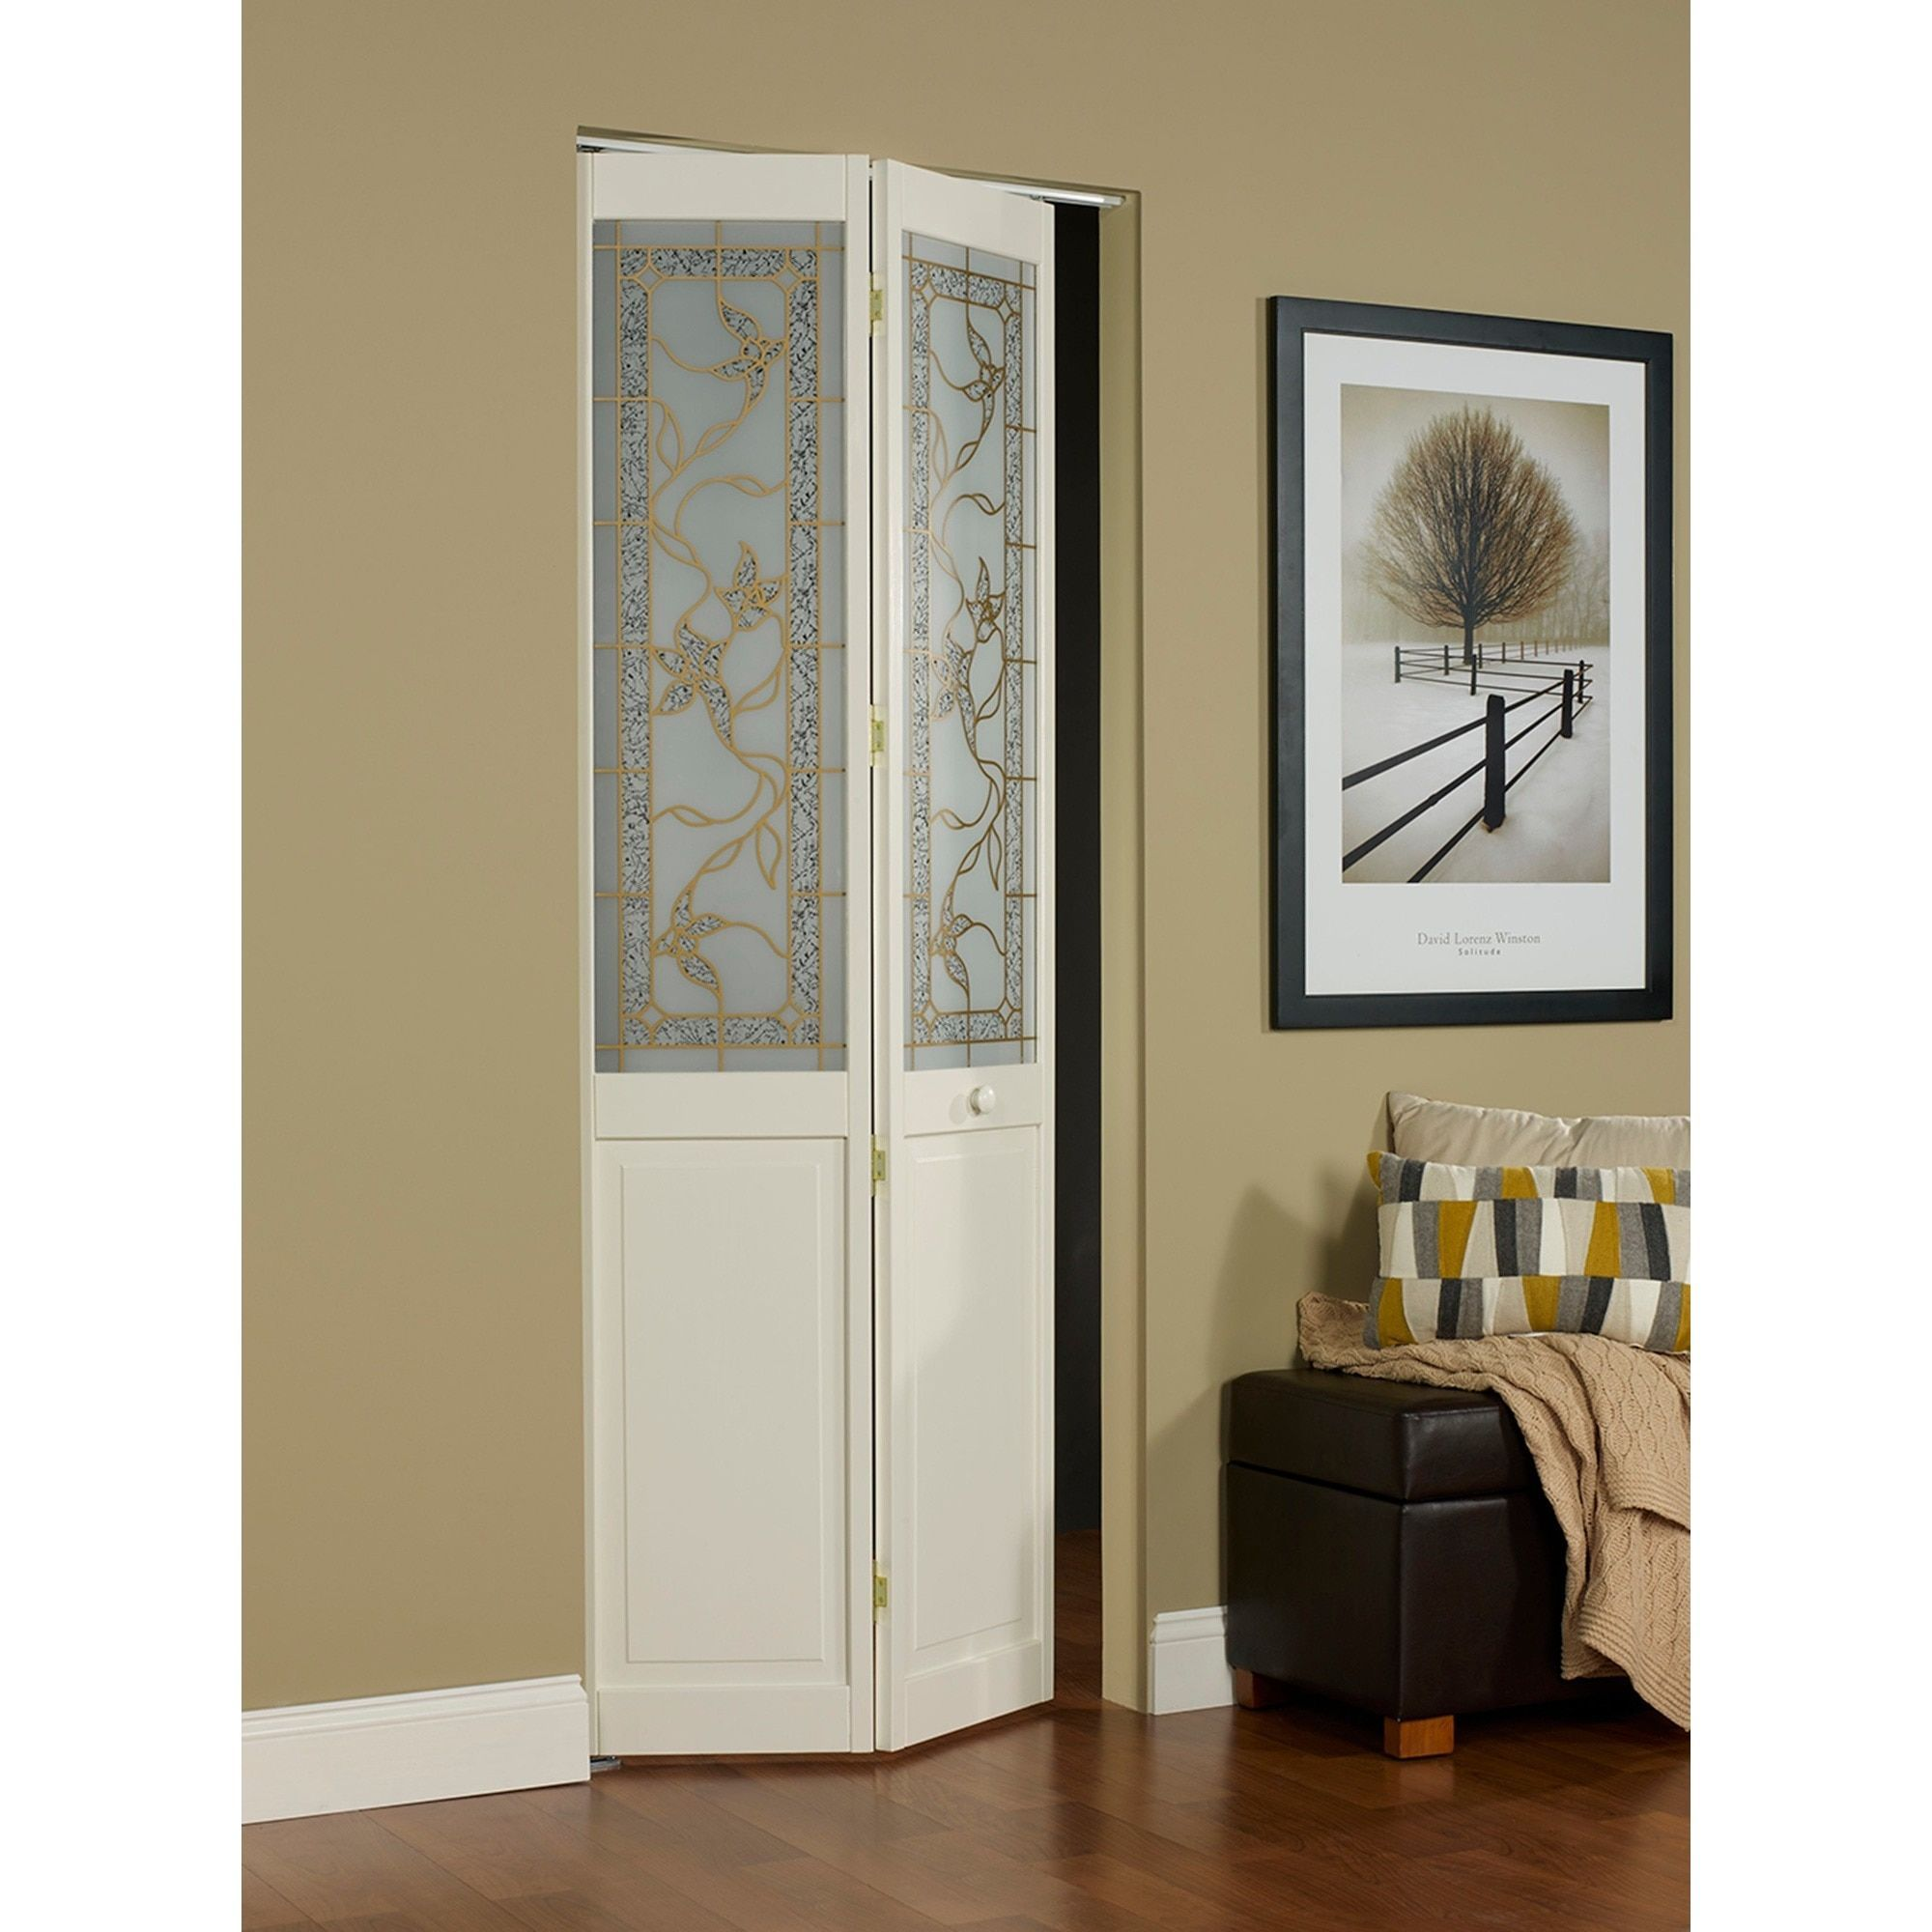 Ltl Giverny 24x80 5 Inch Gl Over Panel Unfinished Bifold Door 617 24 X 80 1 2 Decorative